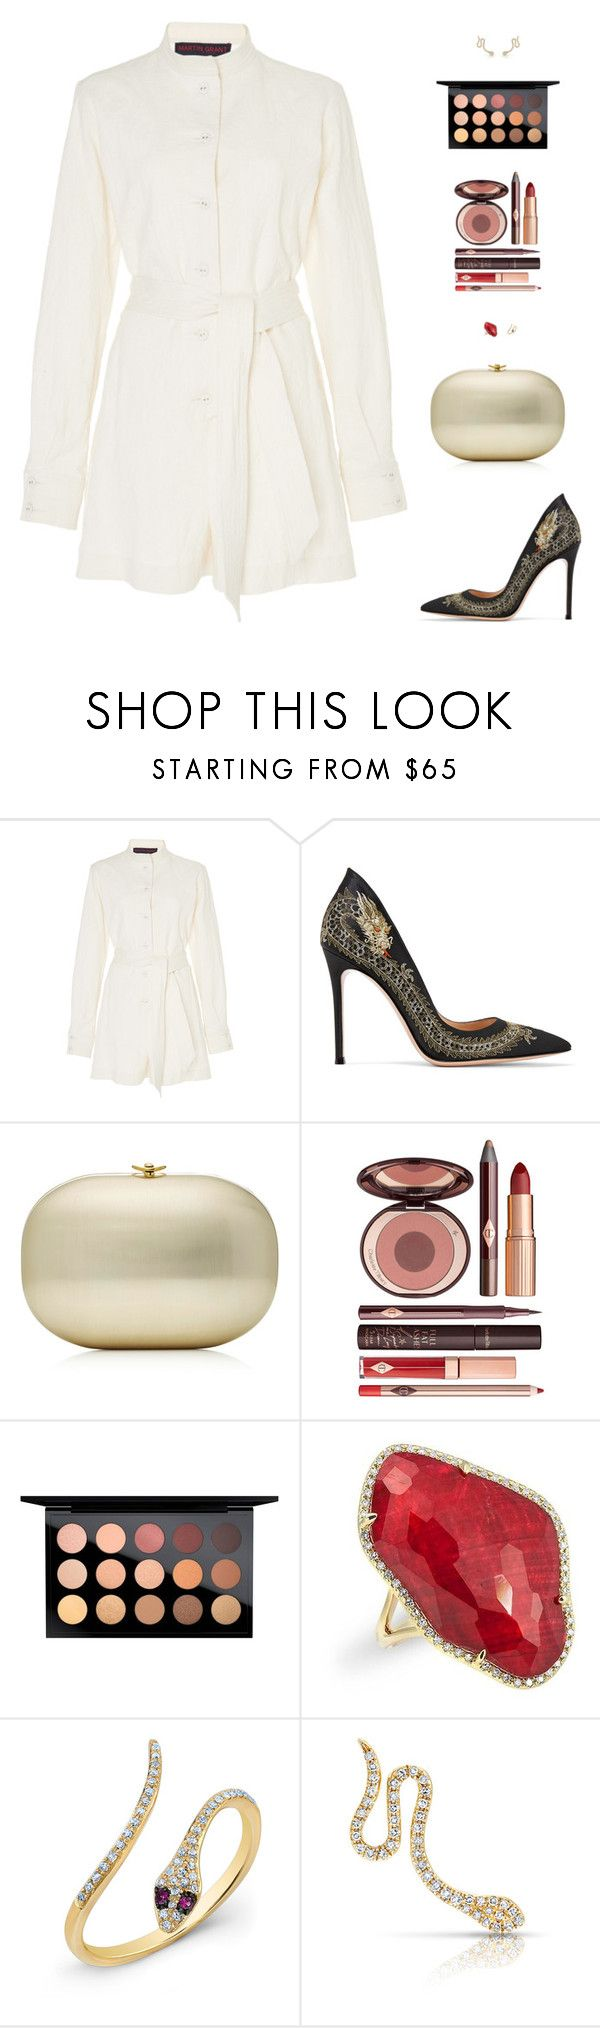 """Sin título #4996"" by mdmsb on Polyvore featuring moda, Martin Grant, Gianvito Rossi, Charlotte Tilbury, MAC Cosmetics y Anne Sisteron"